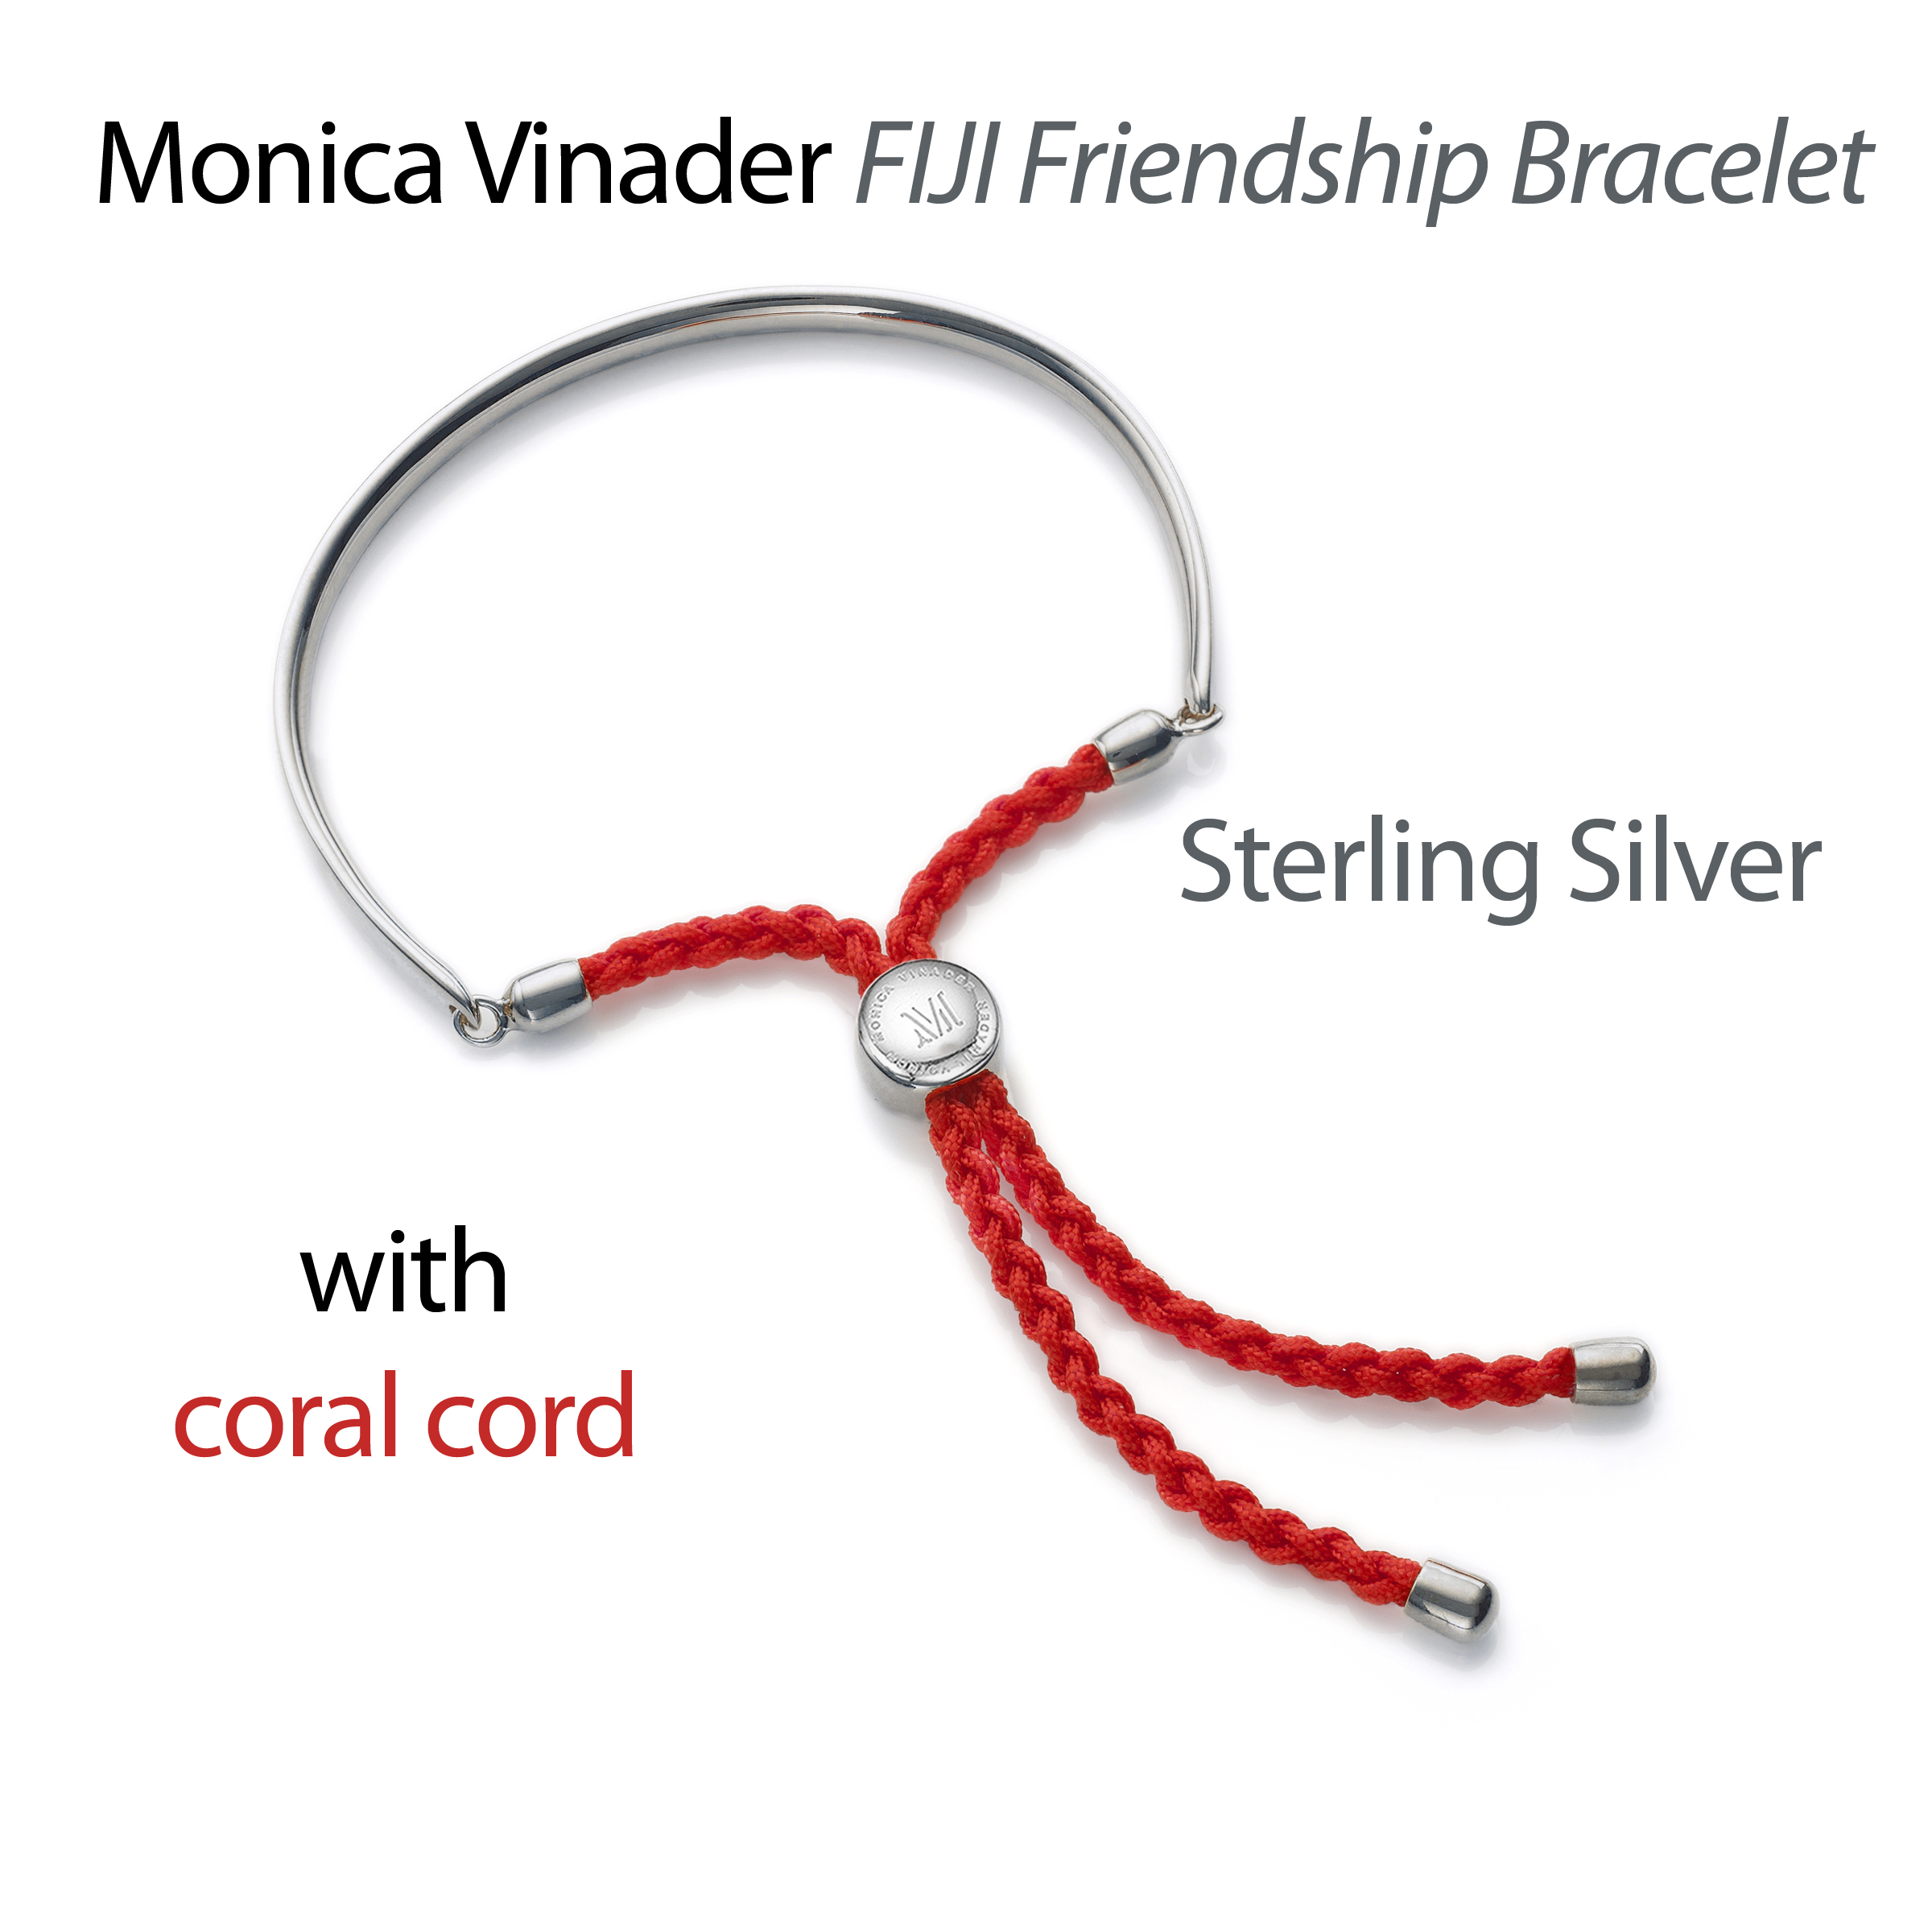 Monica Vinader Fiji friendship bracelet sterling silver with coral cord